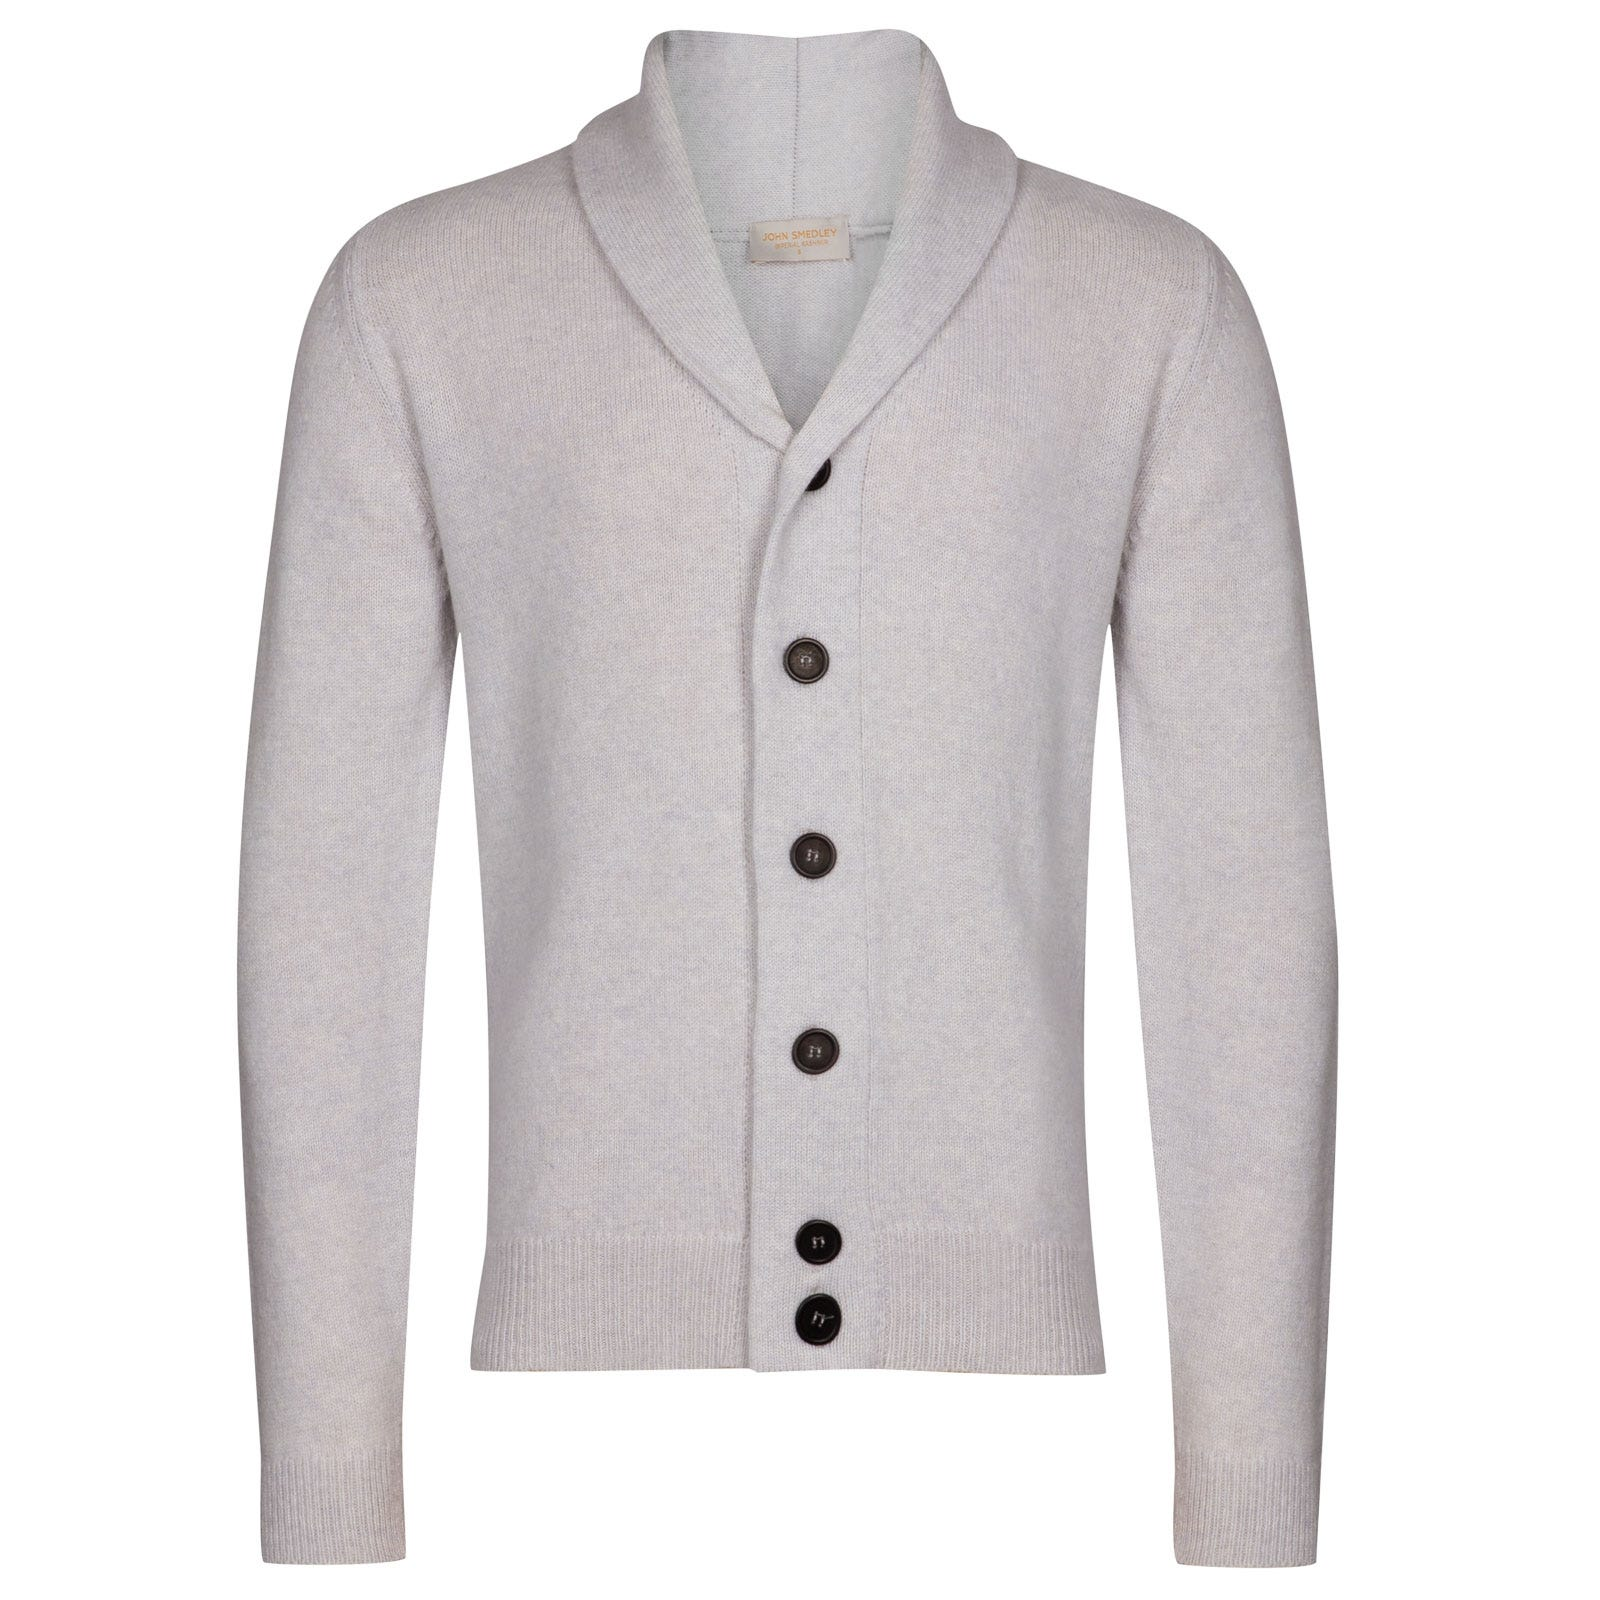 John Smedley patterson Wool and Cashmere Jacket in Soft Grey-XL